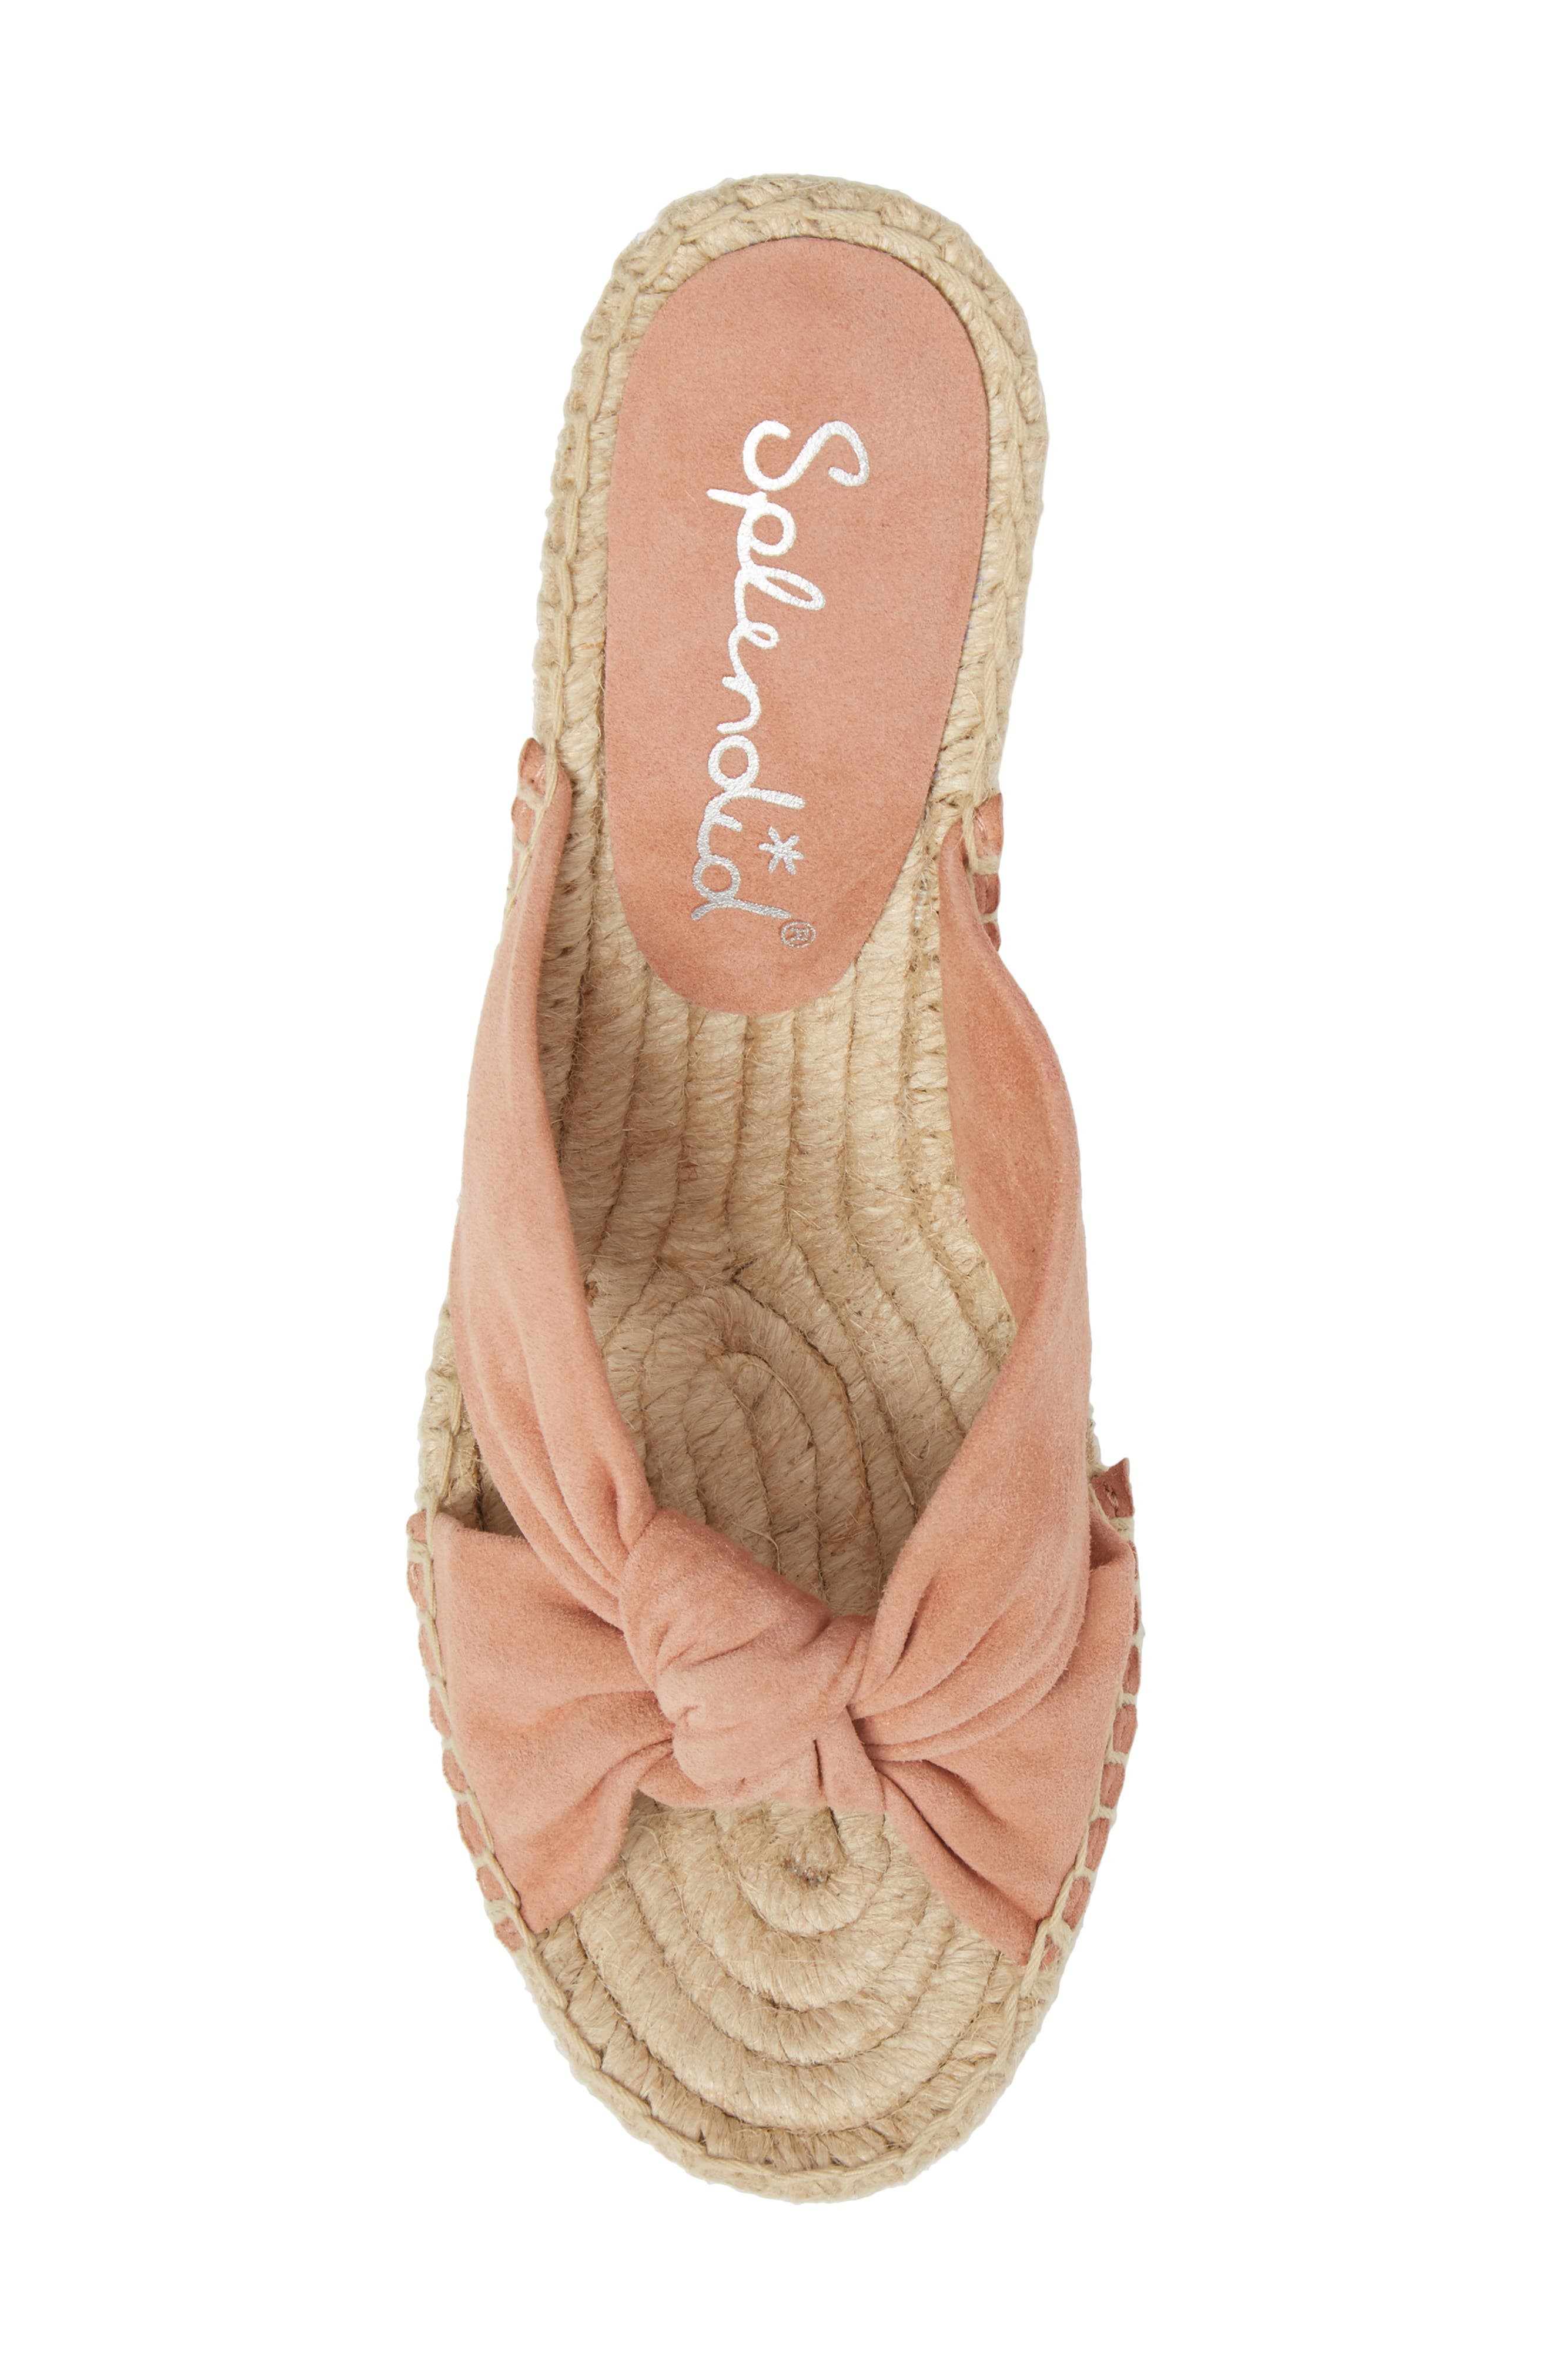 Bautista Knotted Wedge Sandal,                             Alternate thumbnail 5, color,                             DARK BLUSH SUEDE